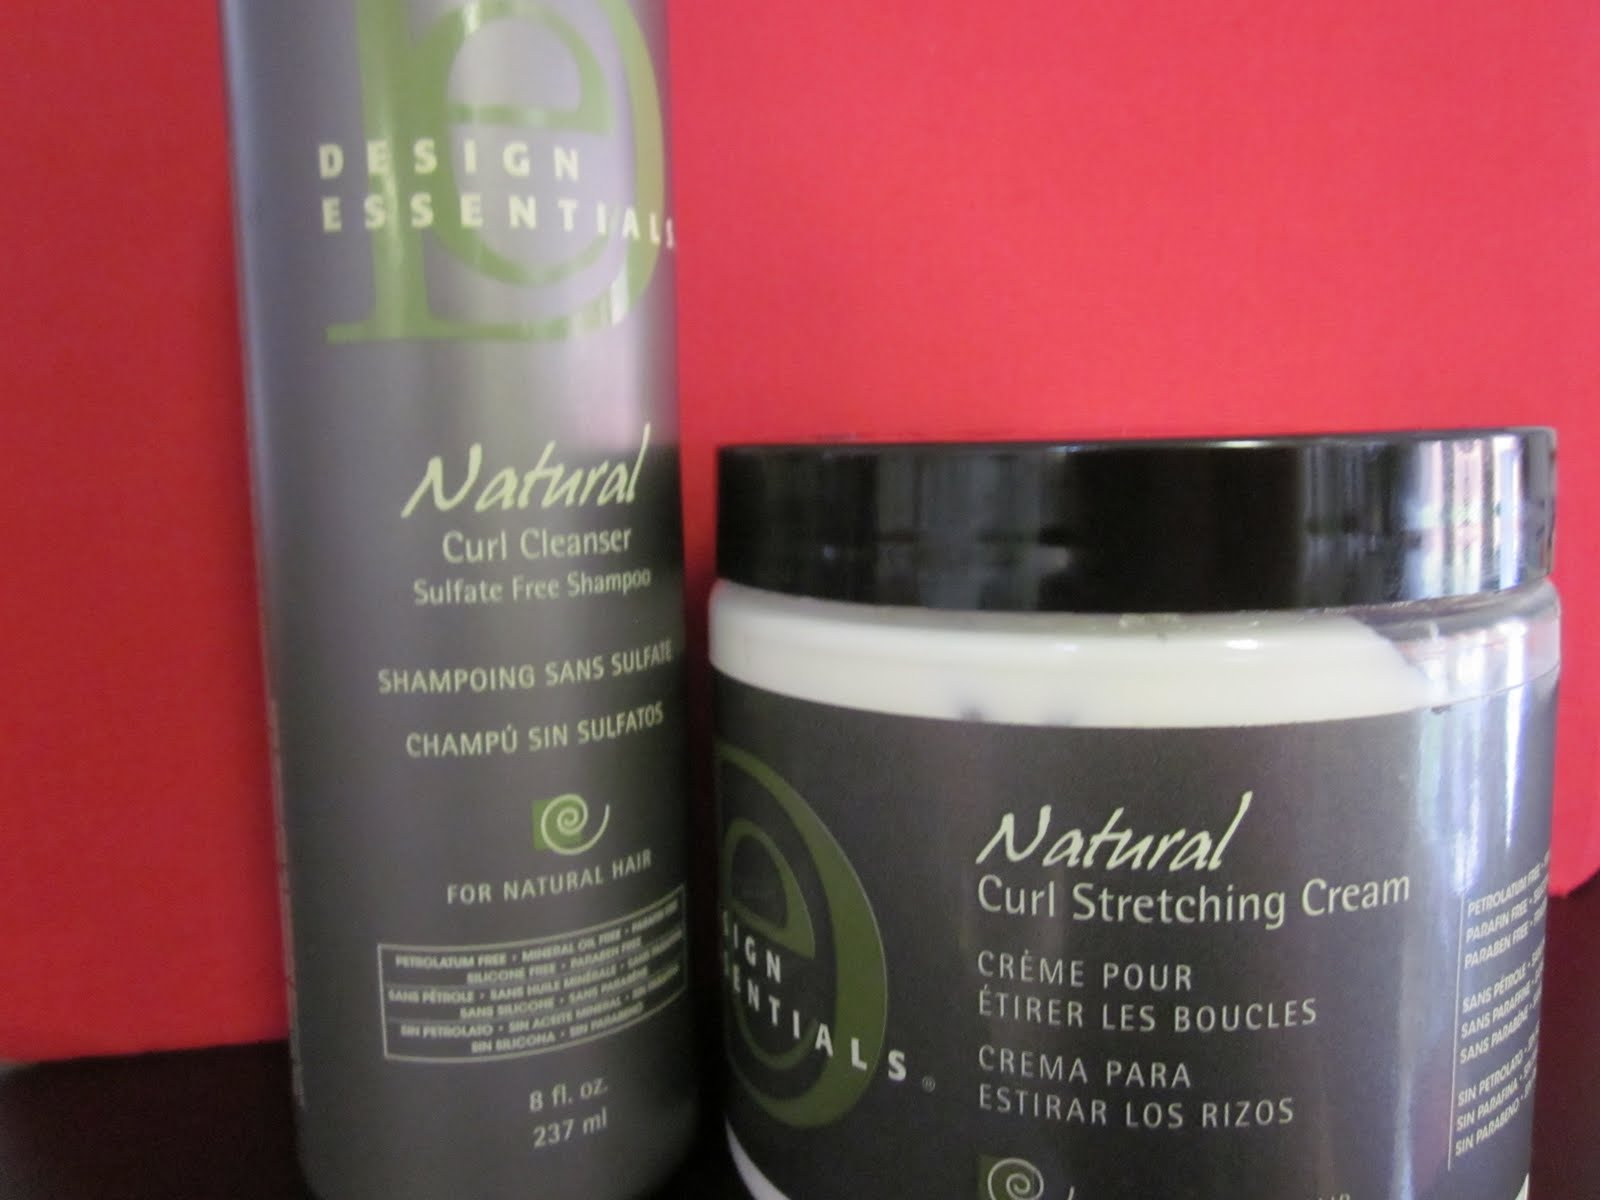 Phenomenalhaircare Product Review Design Essentials Curl Cleanser